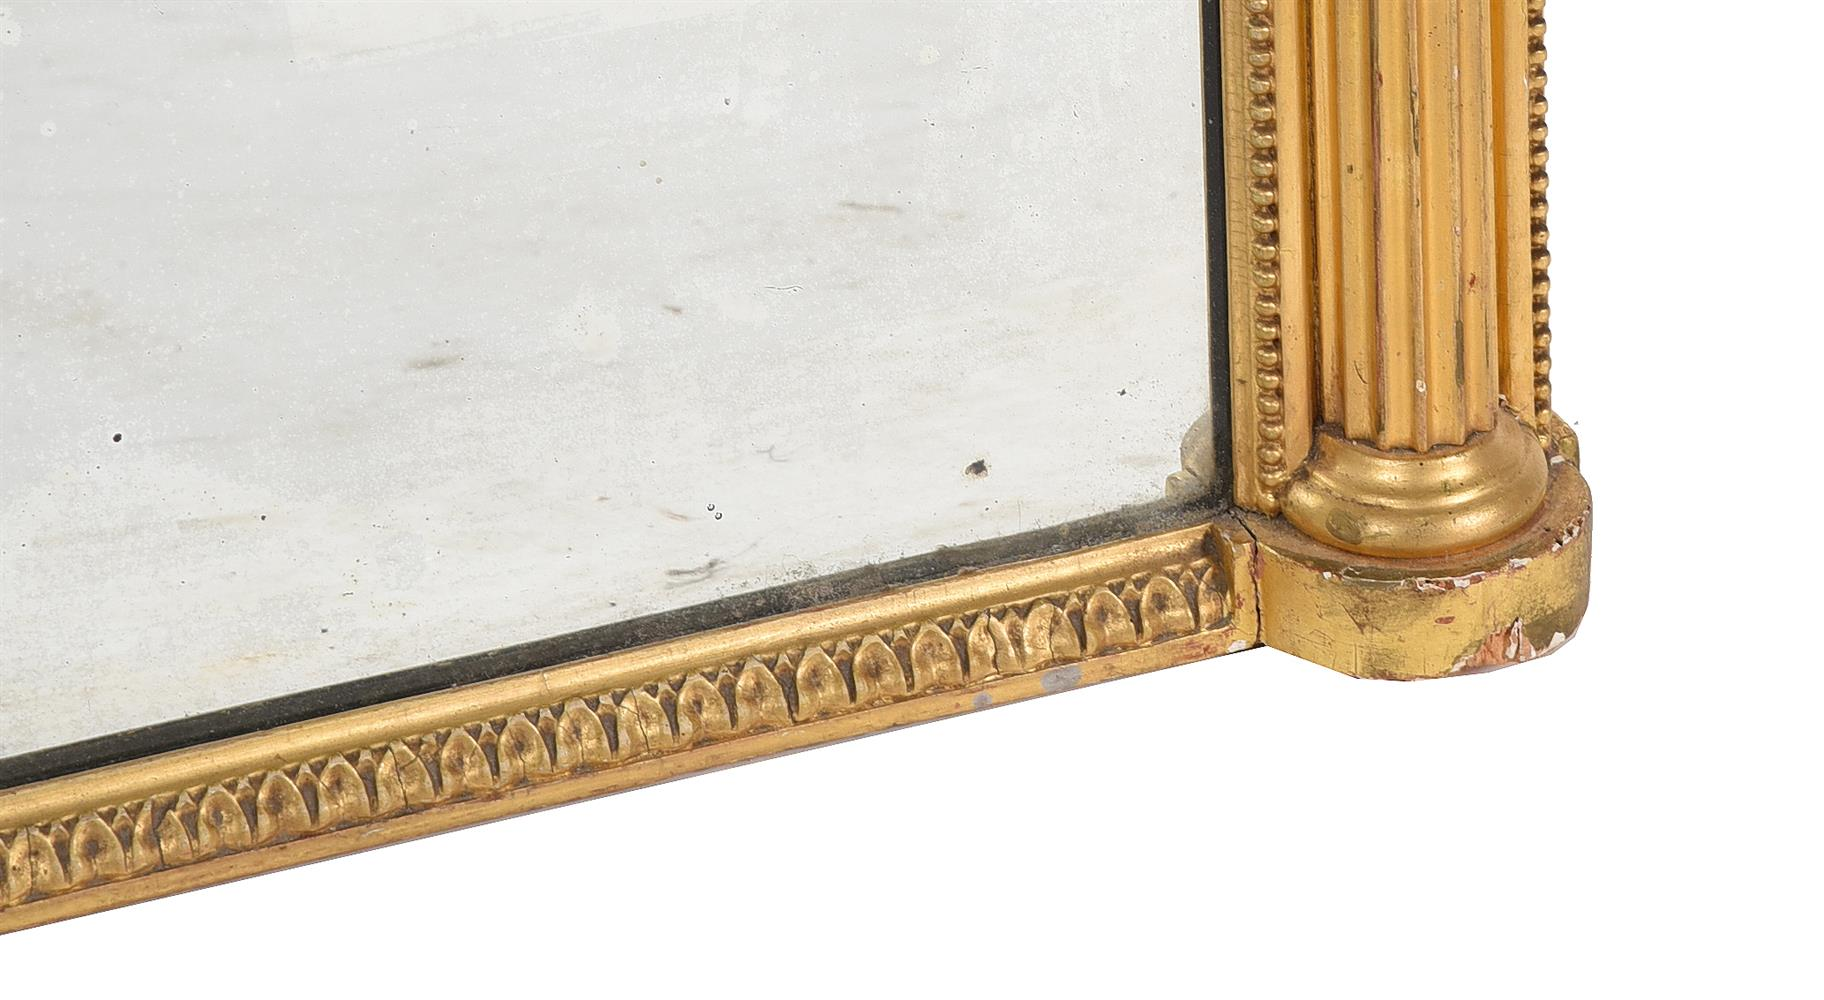 A PAIR OF GEORGE III GILTWOOD AND CREAM PAINTED WALL MIRRORS, CIRCA 1800 - Image 4 of 4